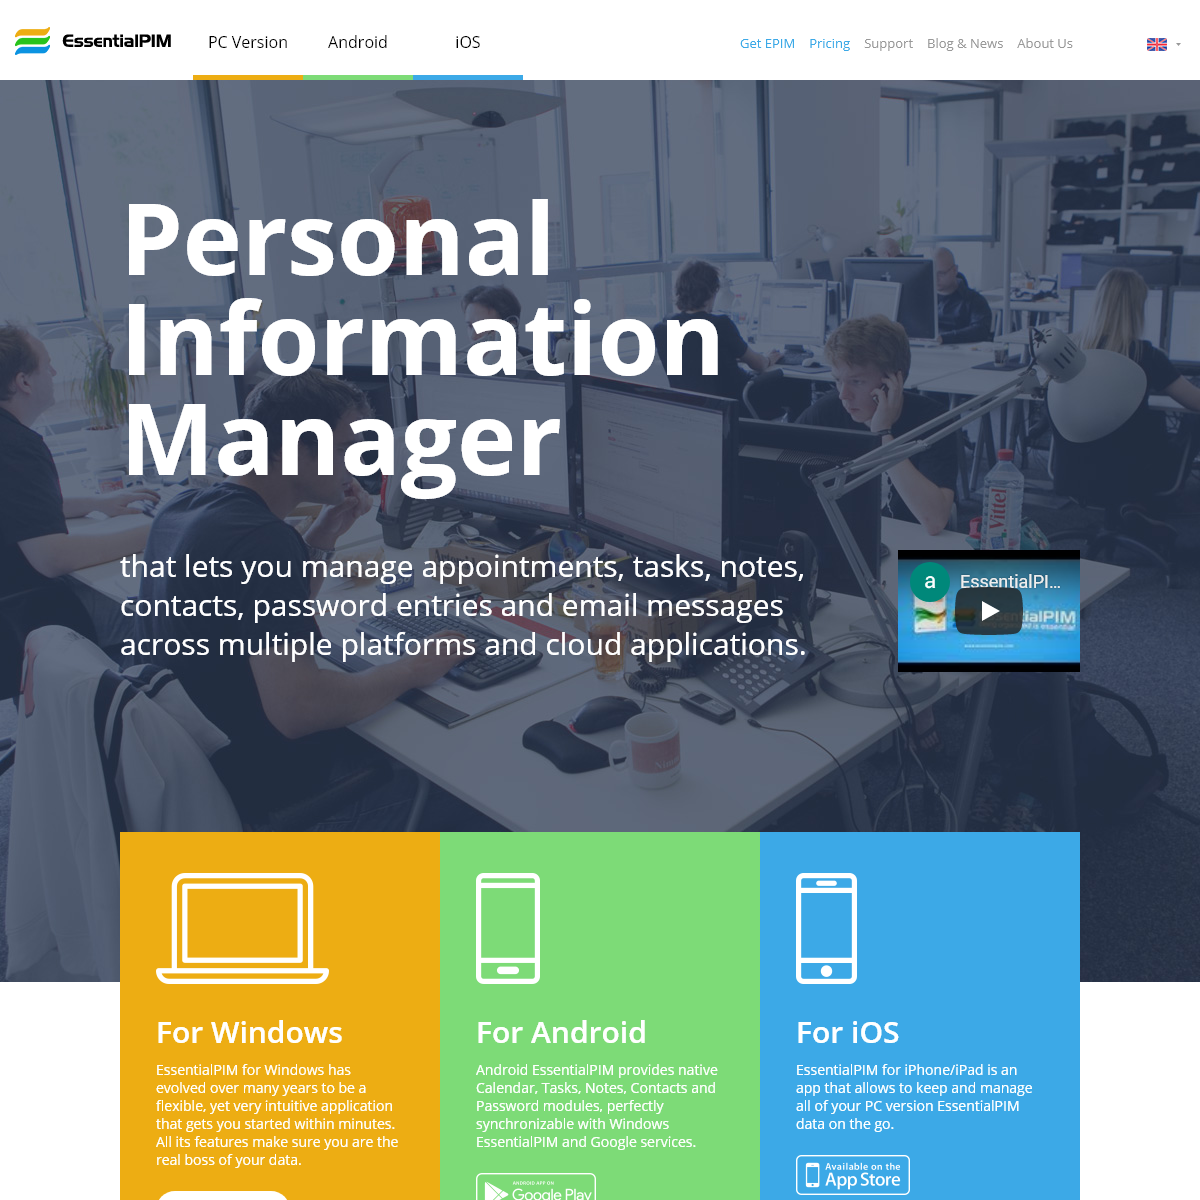 EssentialPIM – Personal Information Manager for Windows, iOS and Android